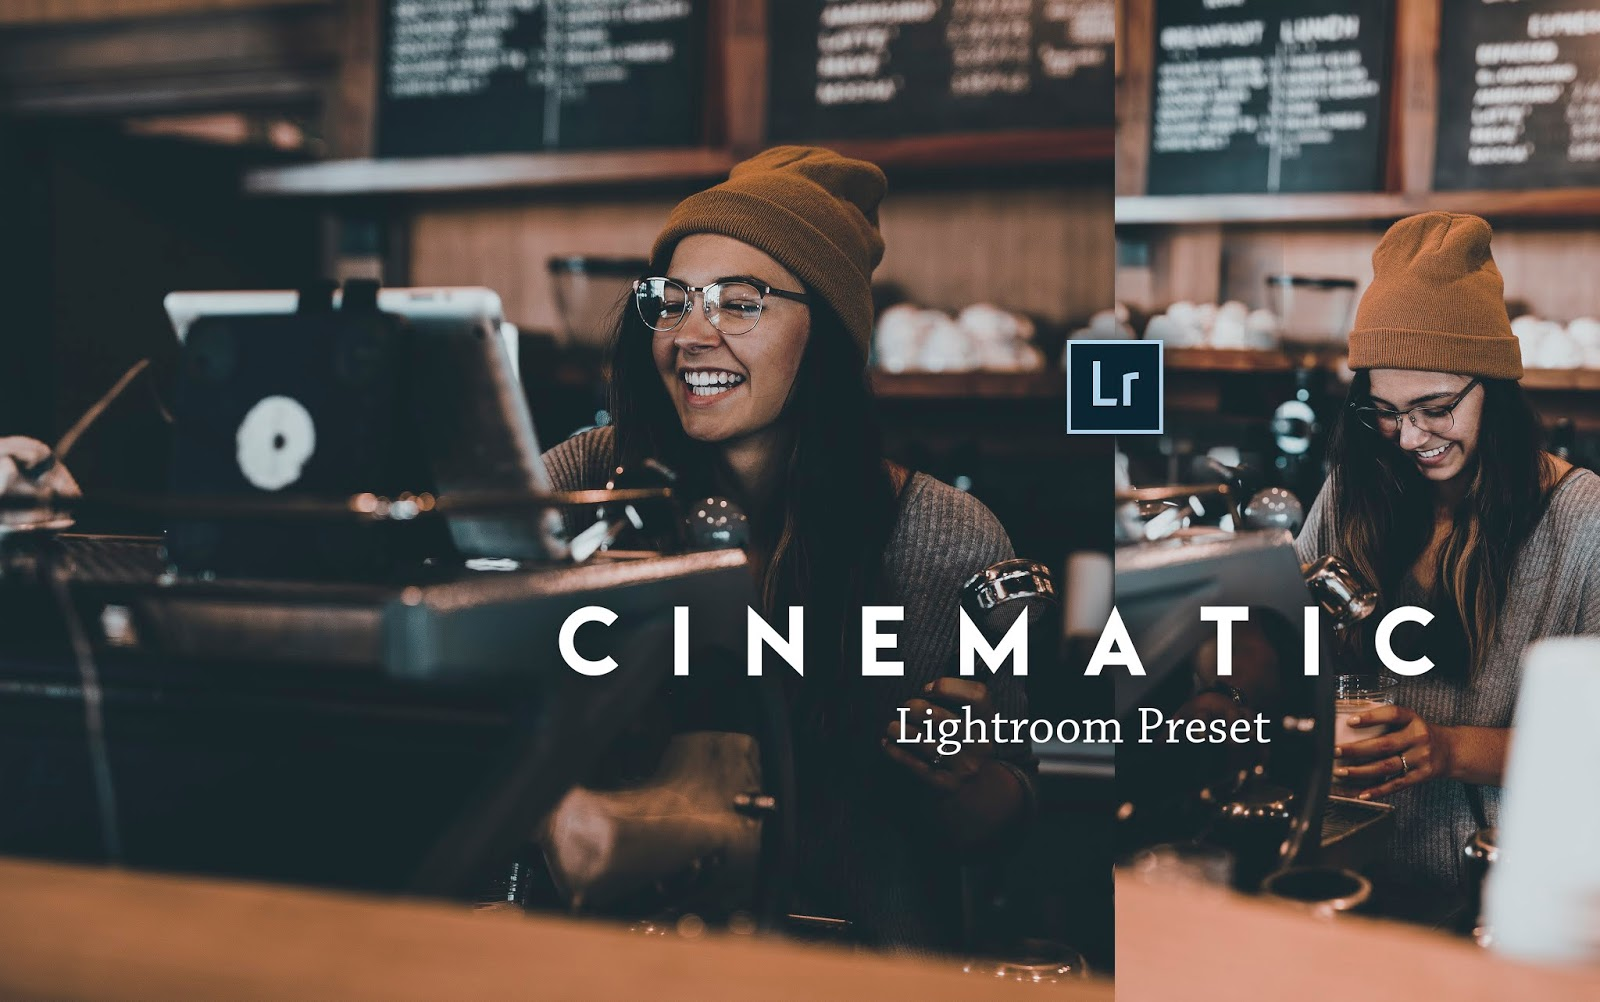 Download Cinematic Lightroom Presets for Free | How to Make Cinematic Photos in Lightroom